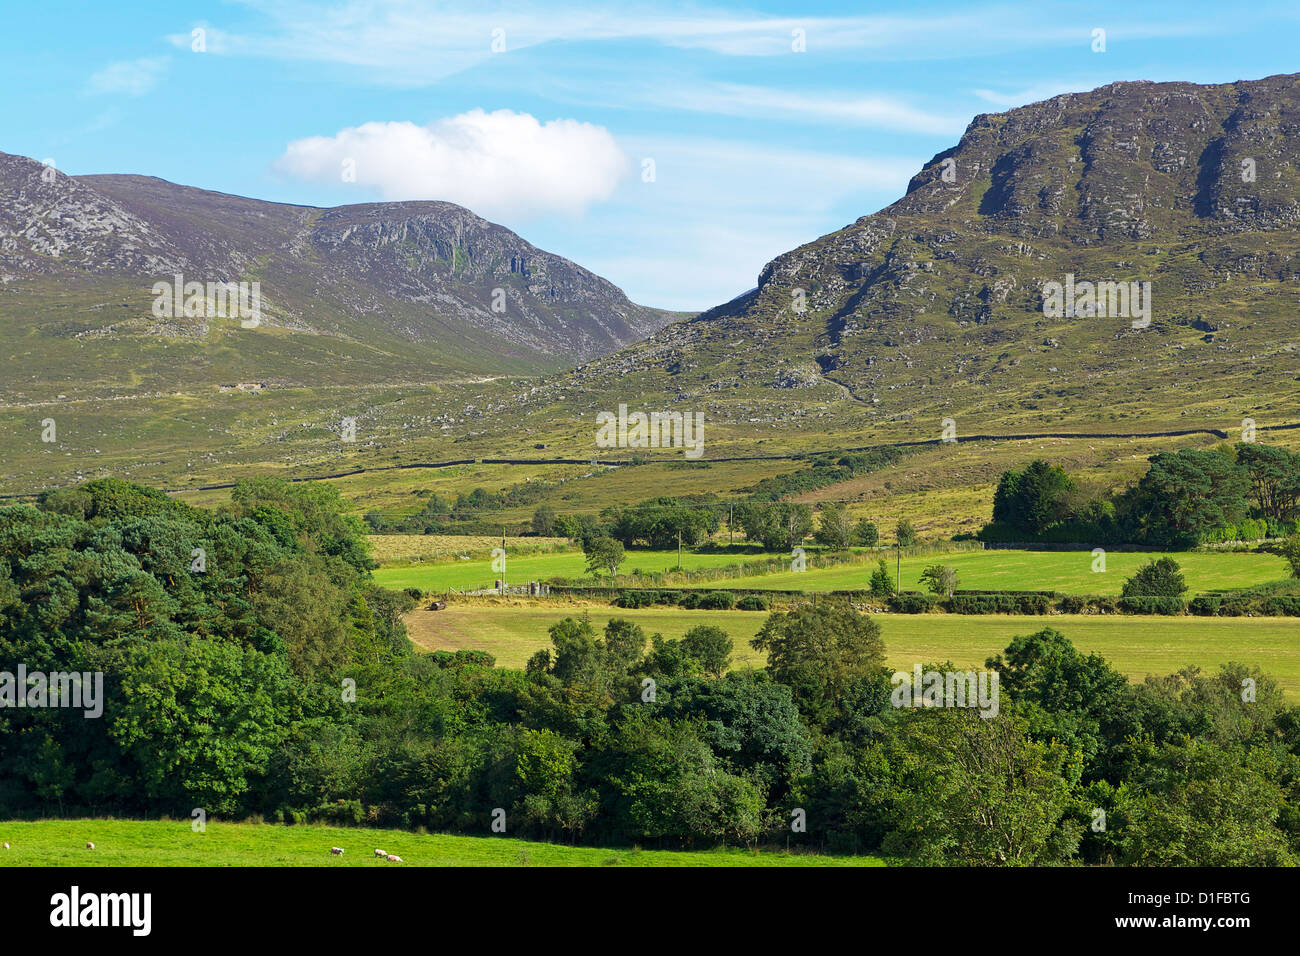 Slievenaglogh, Mourne Mountains, County Down, Ulster, Northern Ireland, United Kingdom, Europe - Stock Image